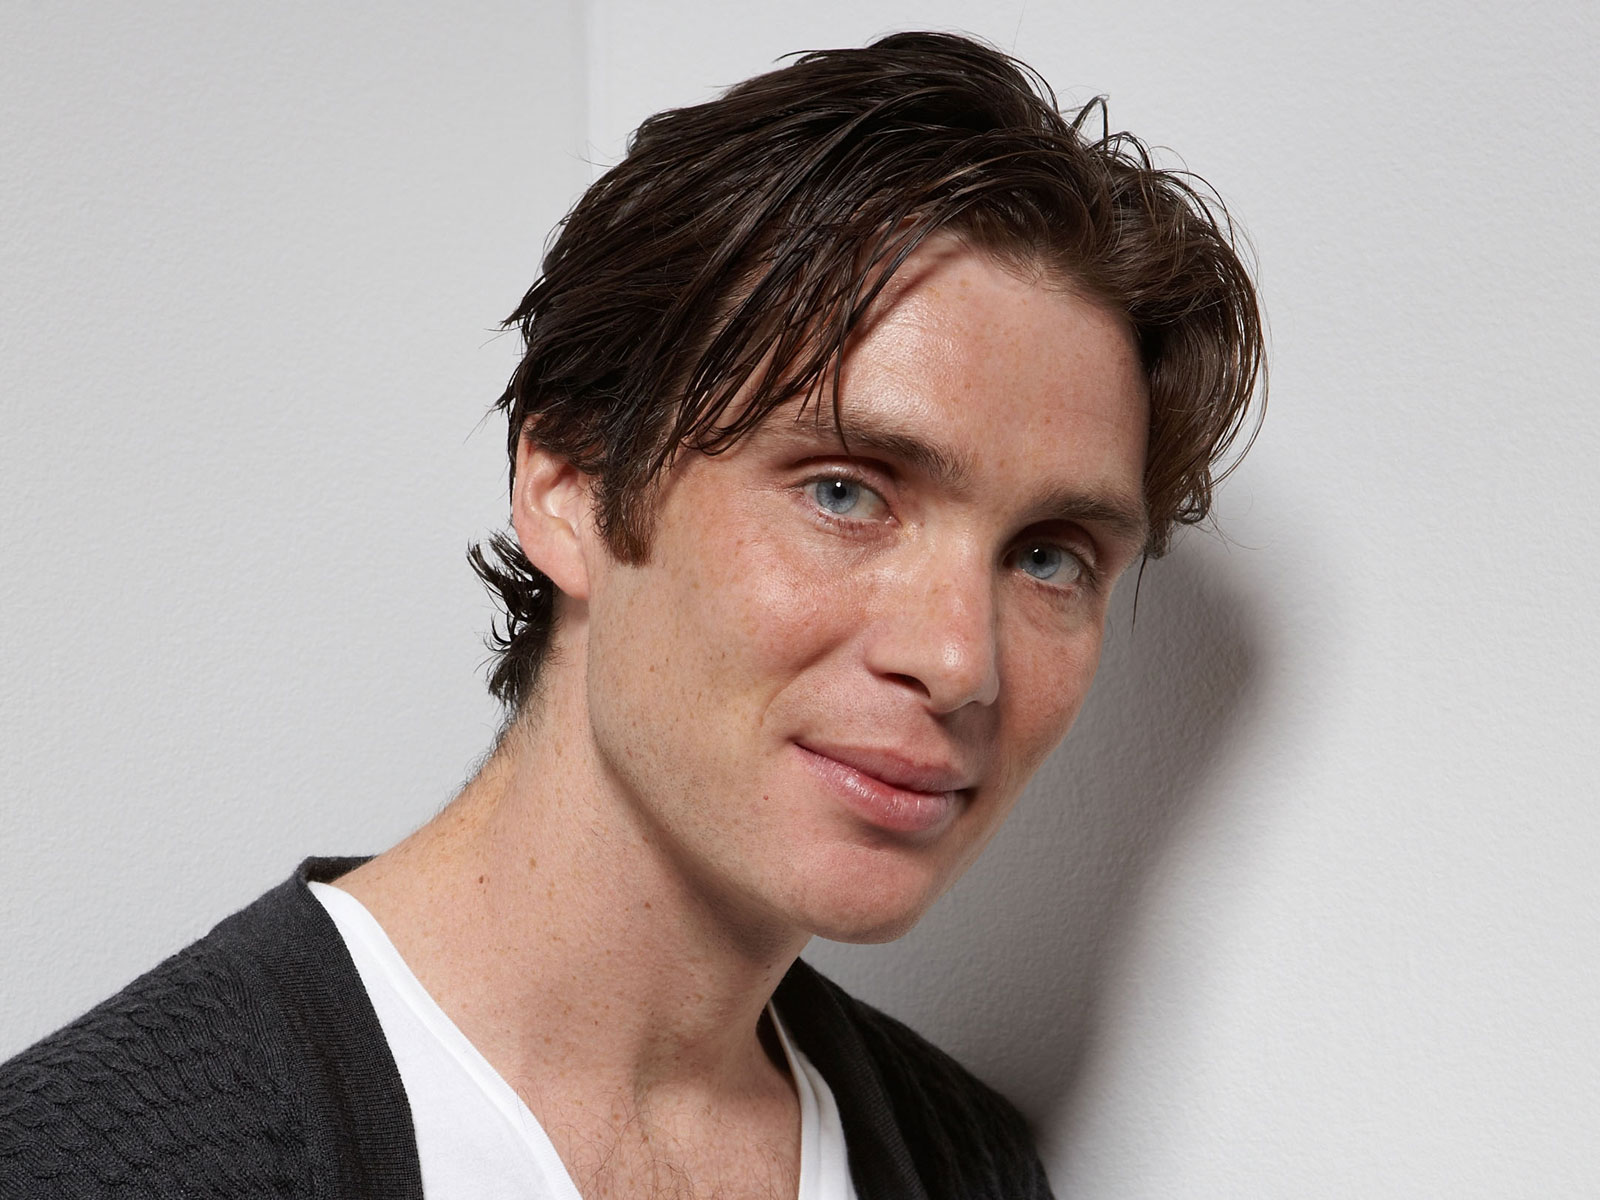 cillian murphy inceptioncillian murphy wife, cillian murphy gif, cillian murphy height, cillian murphy tumblr, cillian murphy 2016, cillian murphy vk, cillian murphy batman, cillian murphy haircut, cillian murphy фильмы, cillian murphy 2017, cillian murphy – so new, cillian murphy young, cillian murphy inception, cillian murphy кинопоиск, cillian murphy movies, cillian murphy filmography, cillian murphy yvonne mcguinness, cillian murphy family, cillian murphy wiki, cillian murphy music